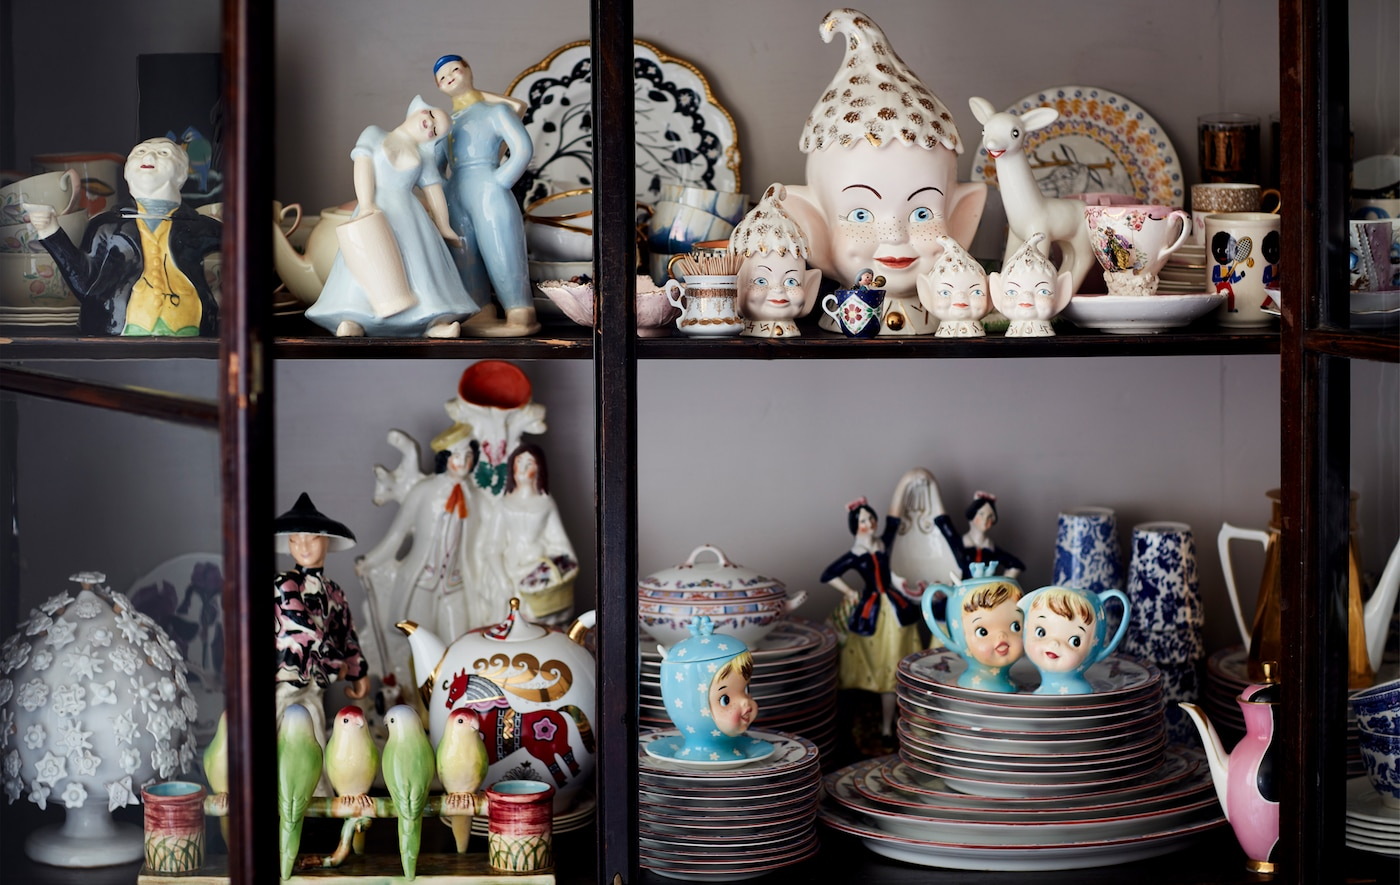 A collection of china ornaments in a glass-fronted cabinet.